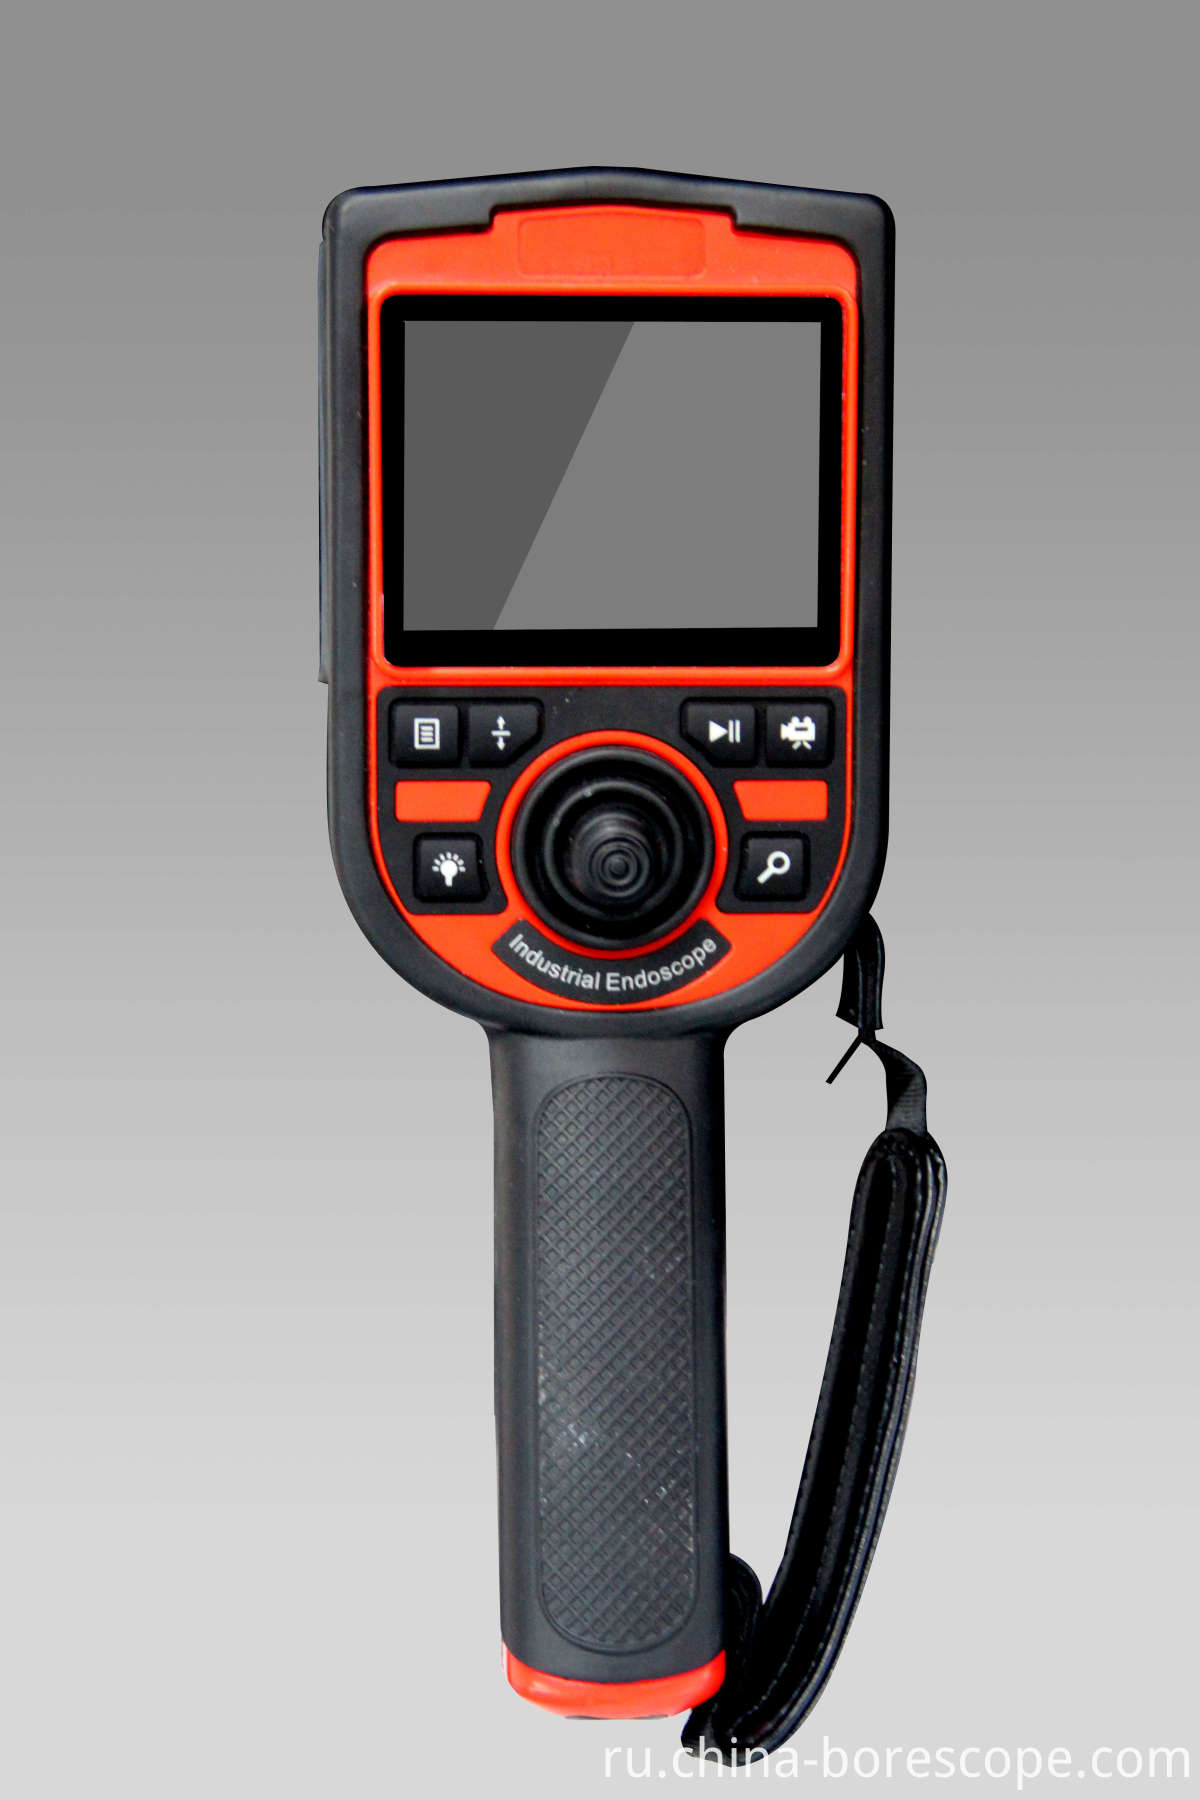 Handheld industrial videoscope